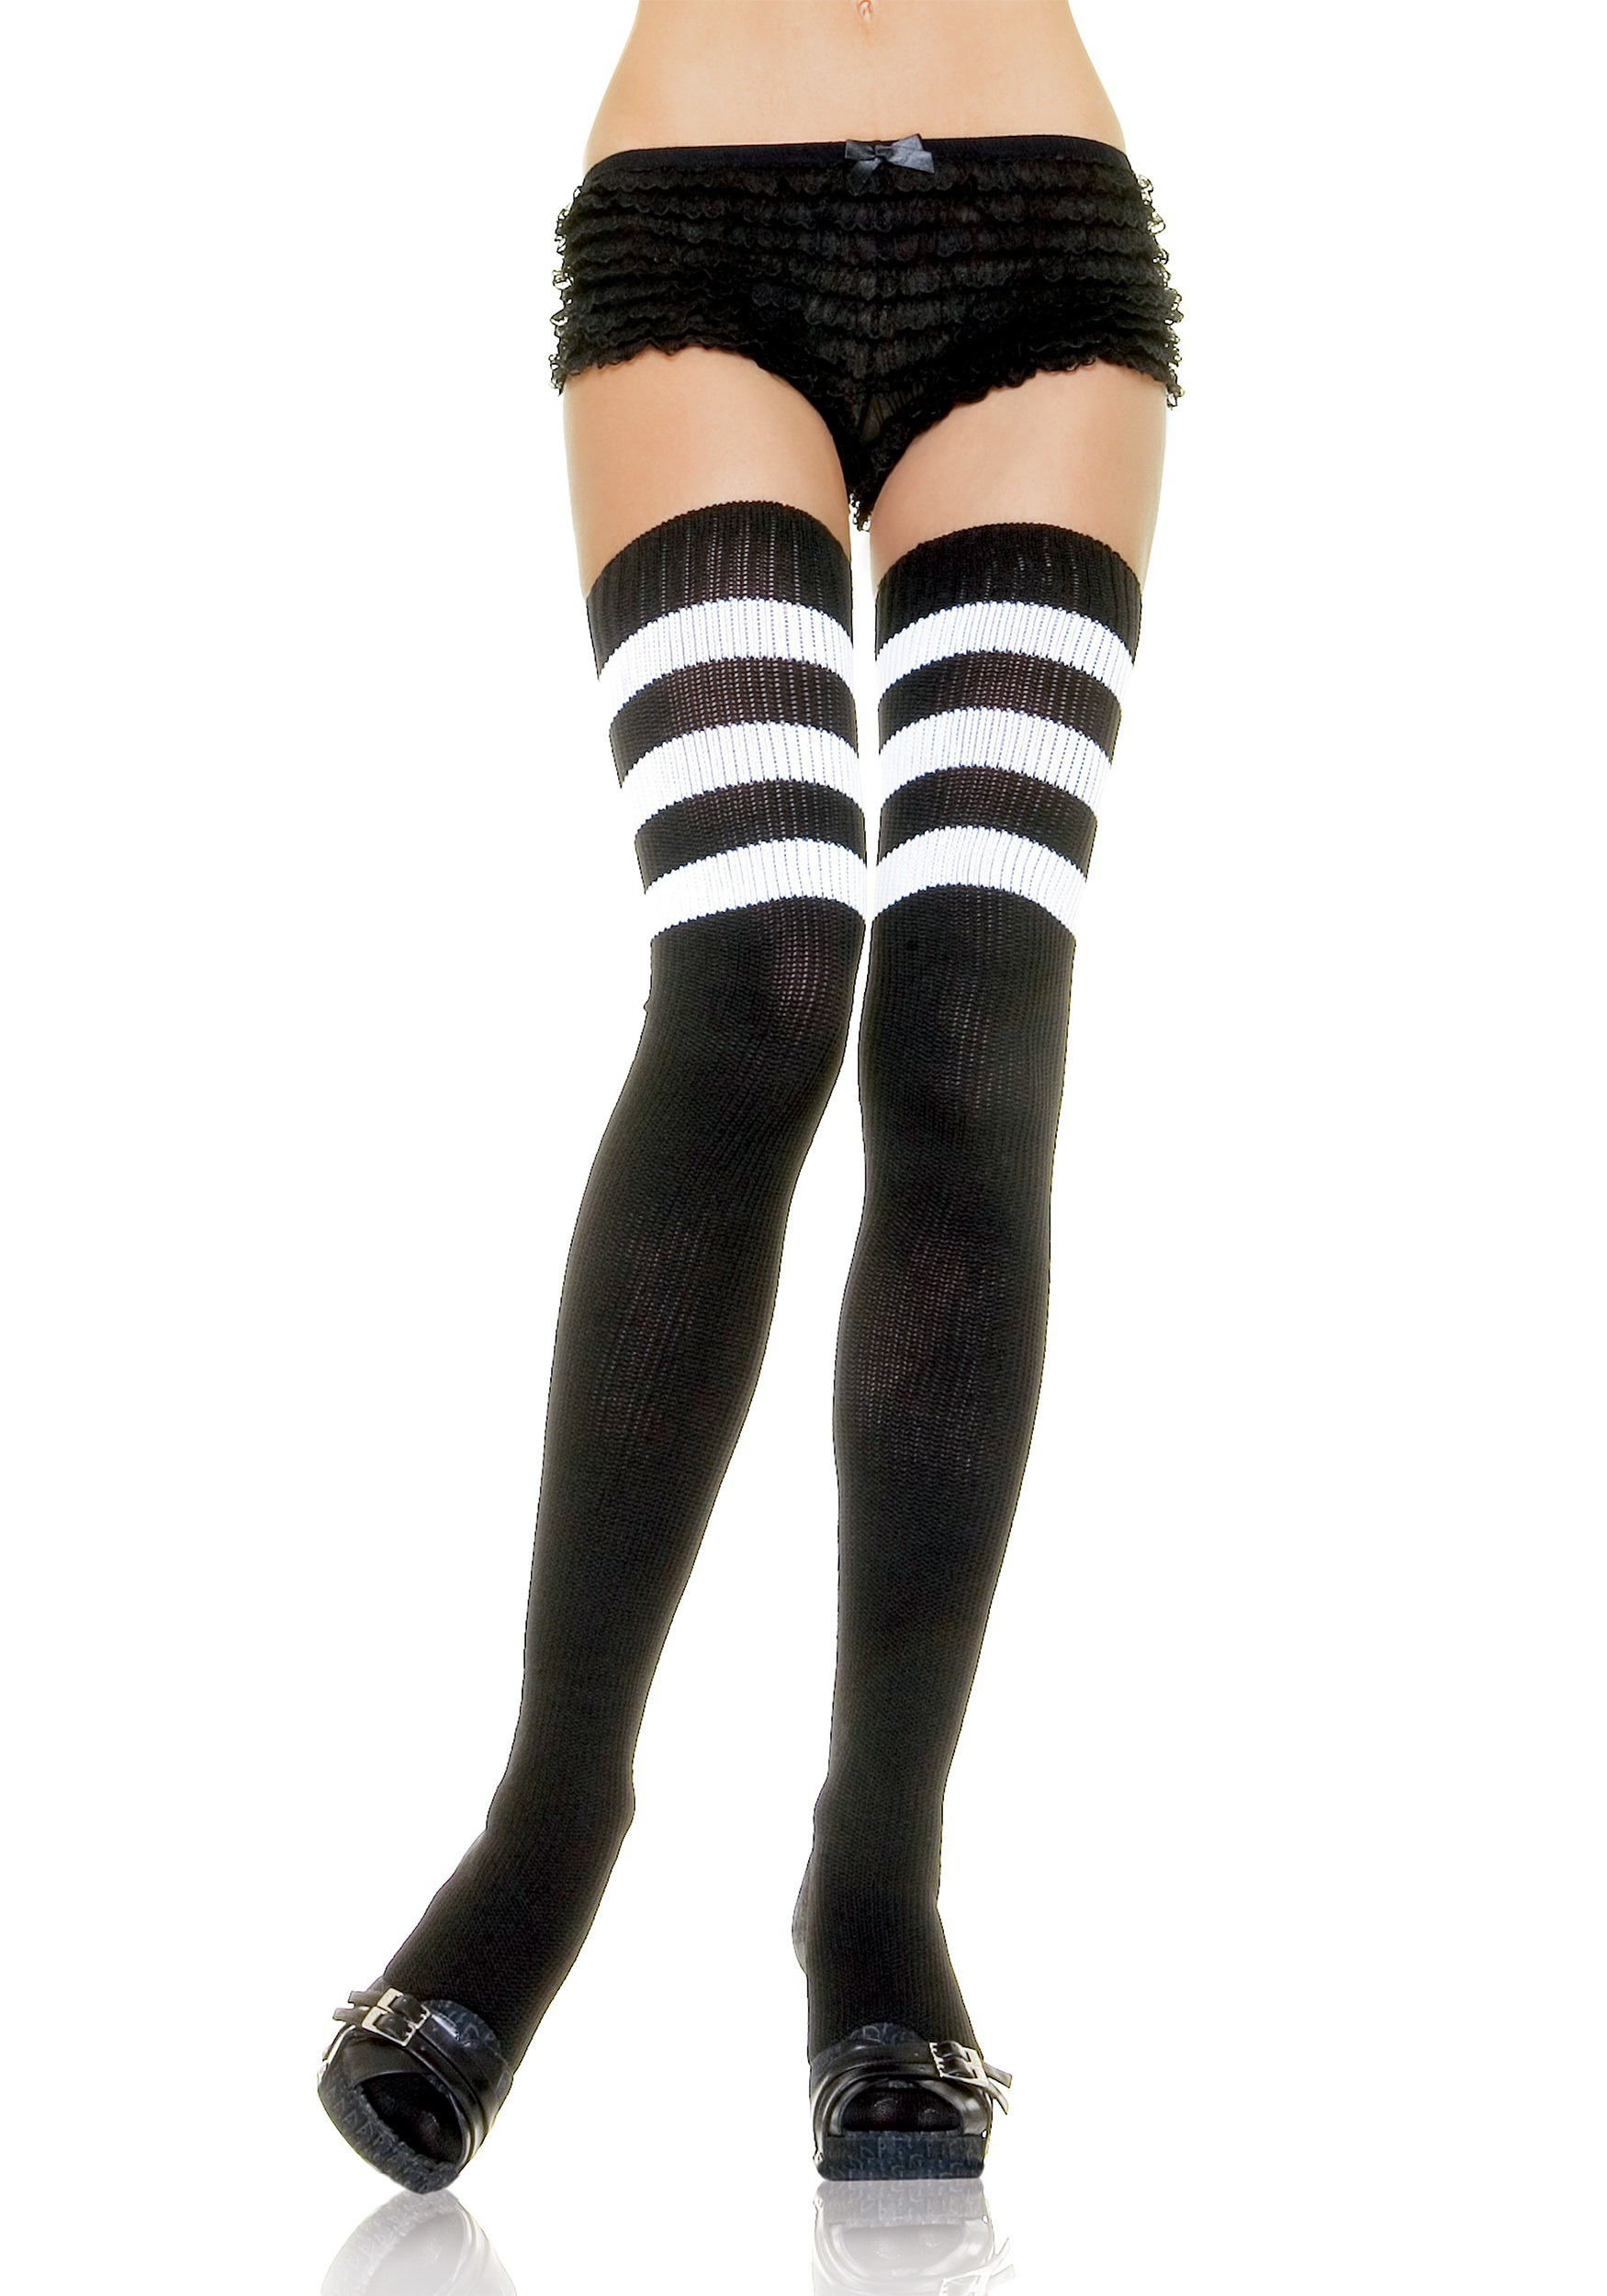 a8a092709f3 Women s Black Athletic Socks with White Stripes